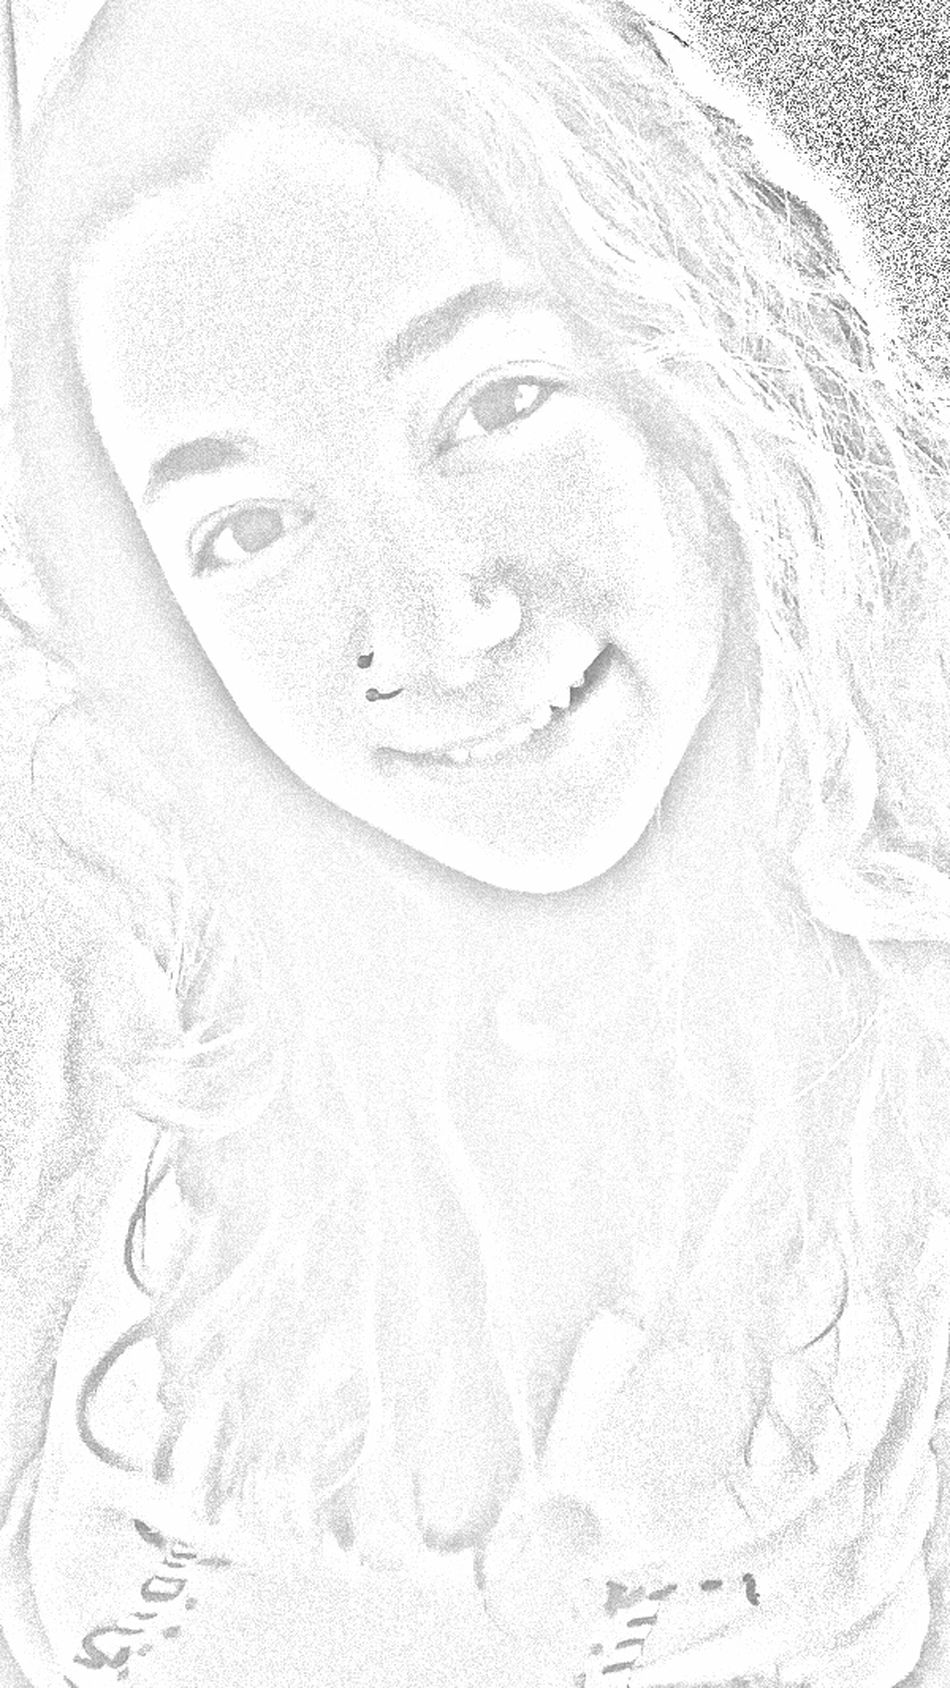 Charcoal Sketch Smiling Face White Photo Editor Gooddays EyeEm